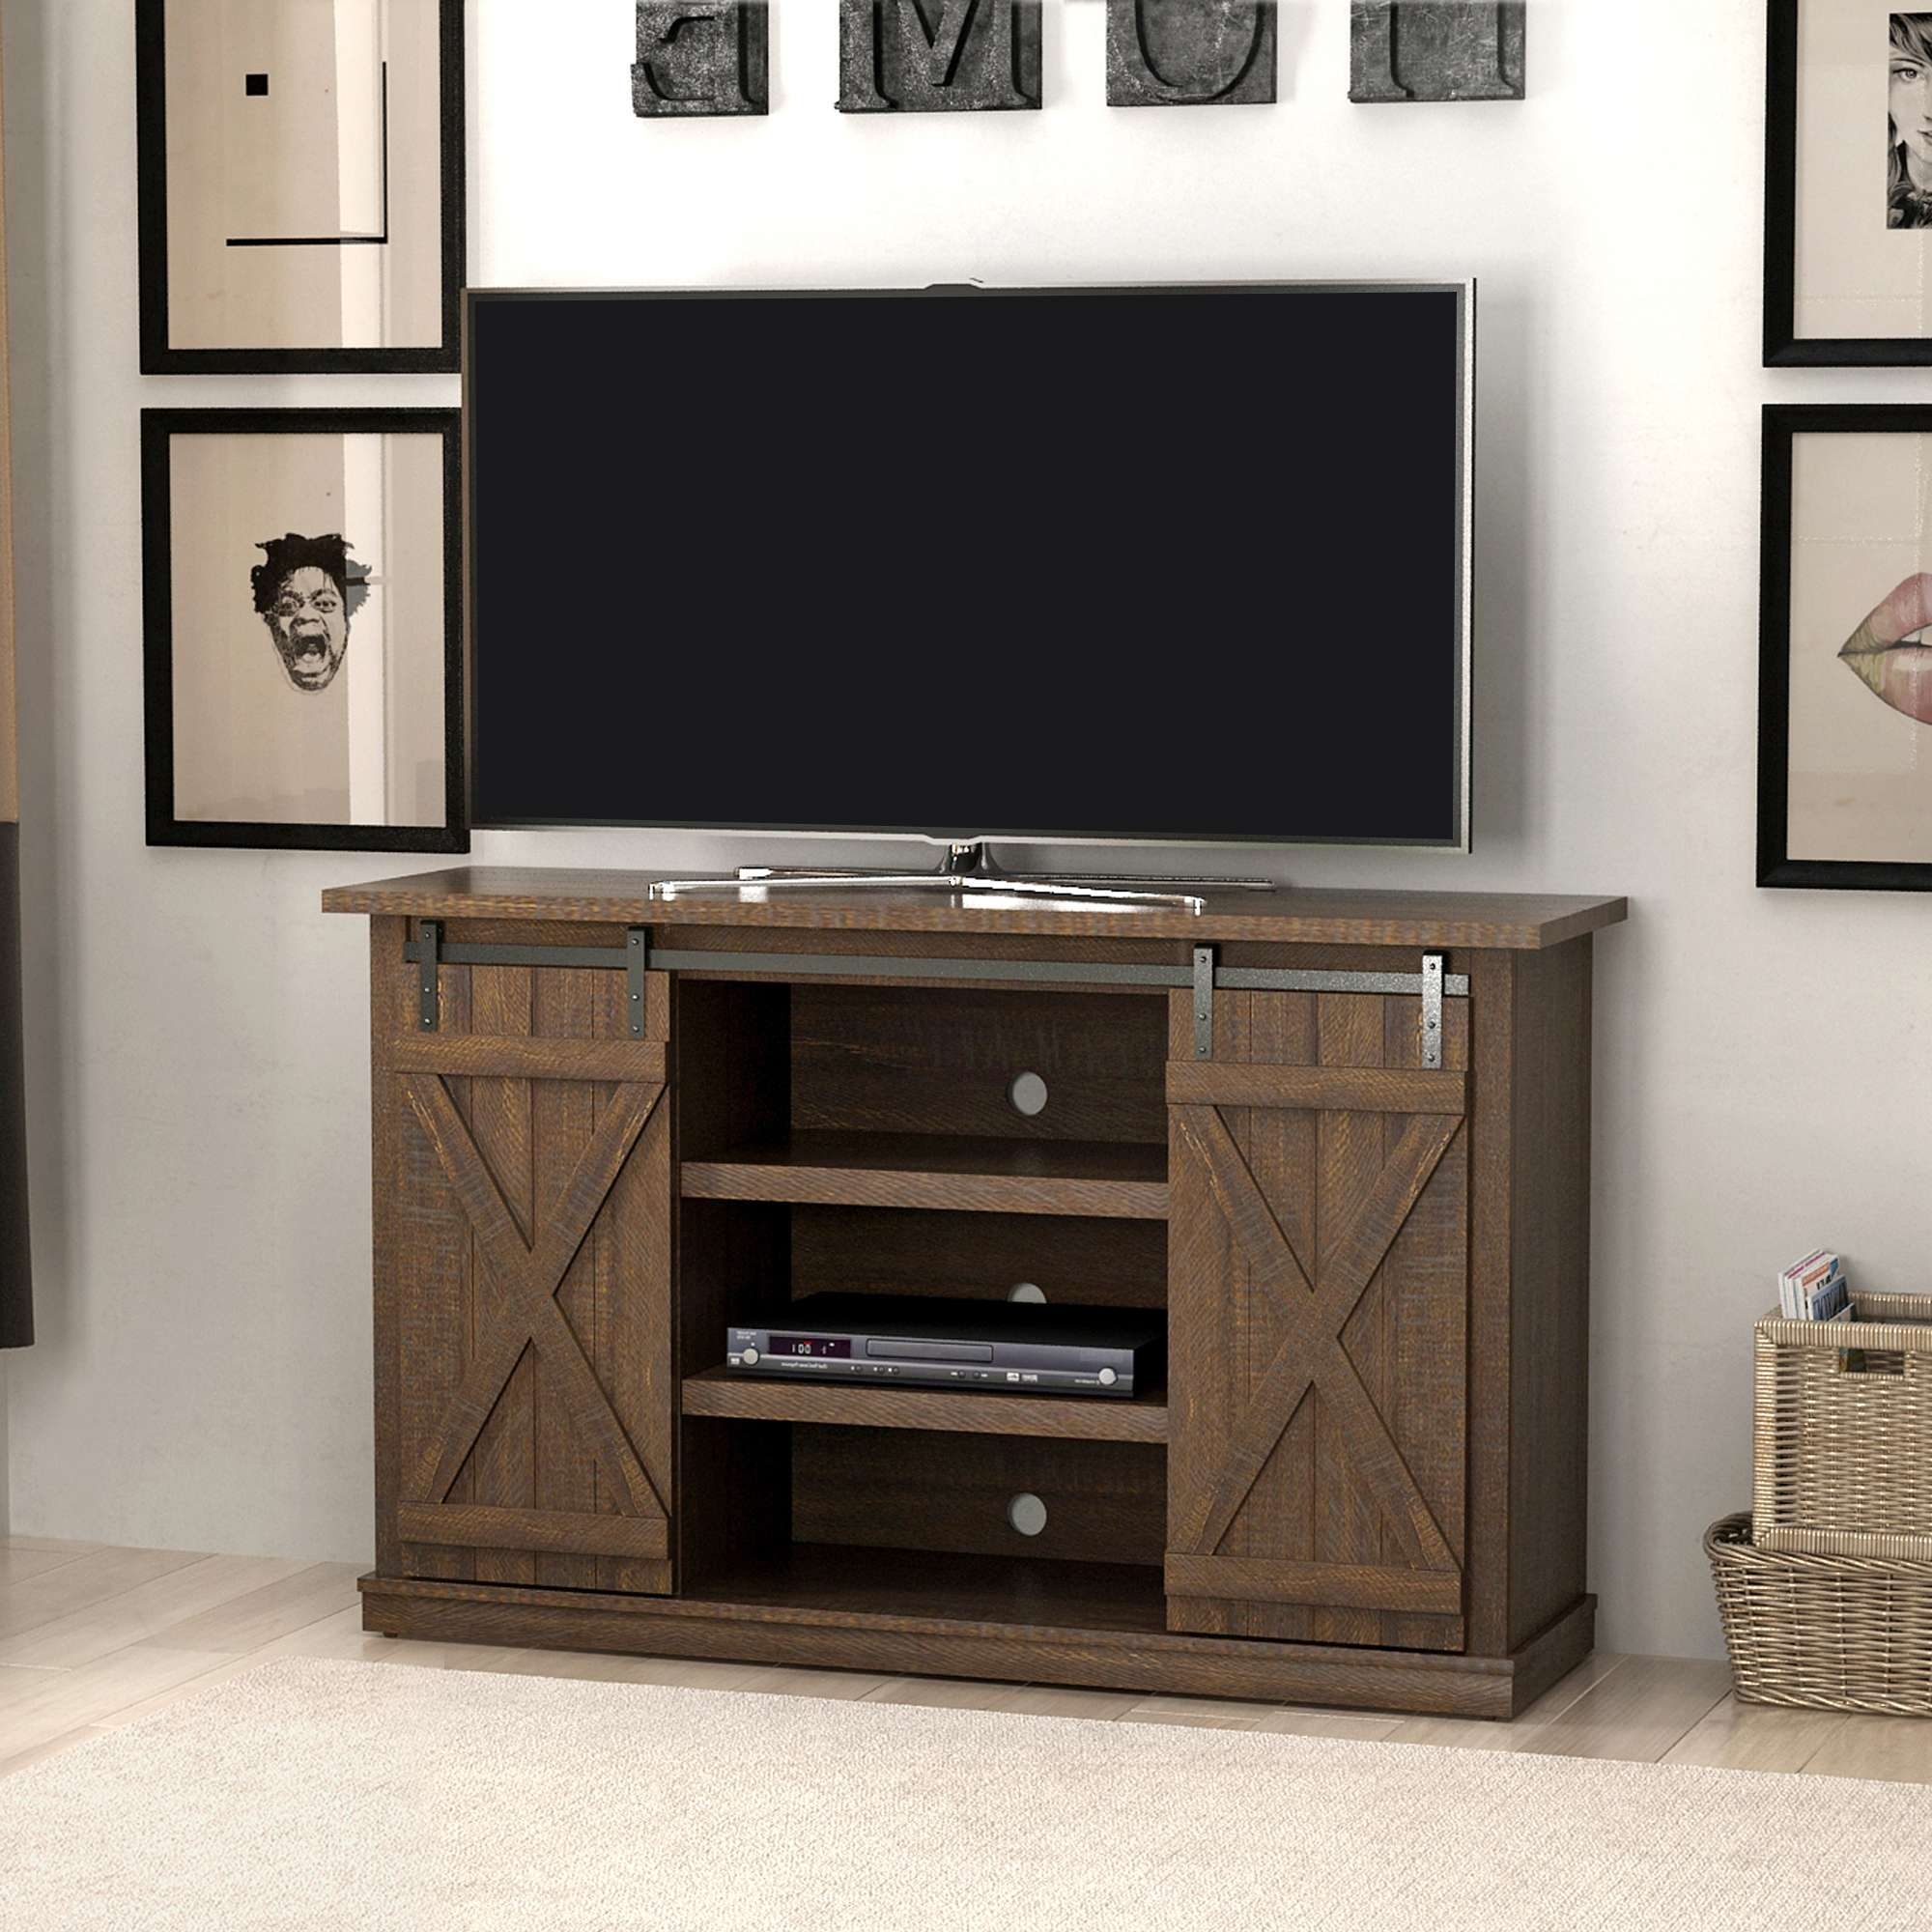 Tv Stands – Walmart For Tv Stands Computer Desk Combo (View 13 of 15)